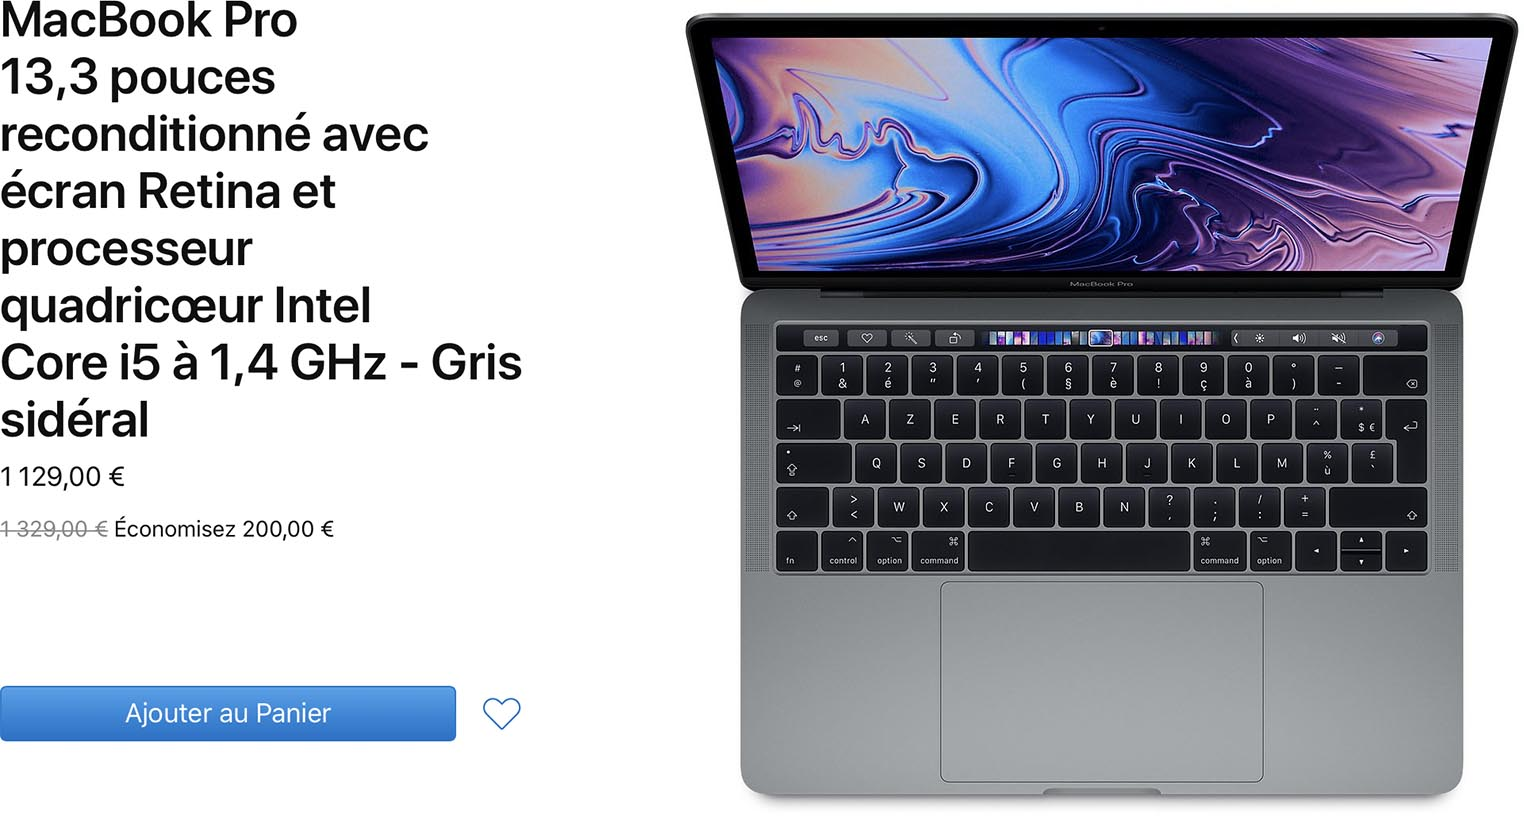 MacBook Pro 13 pouces Refurb Store